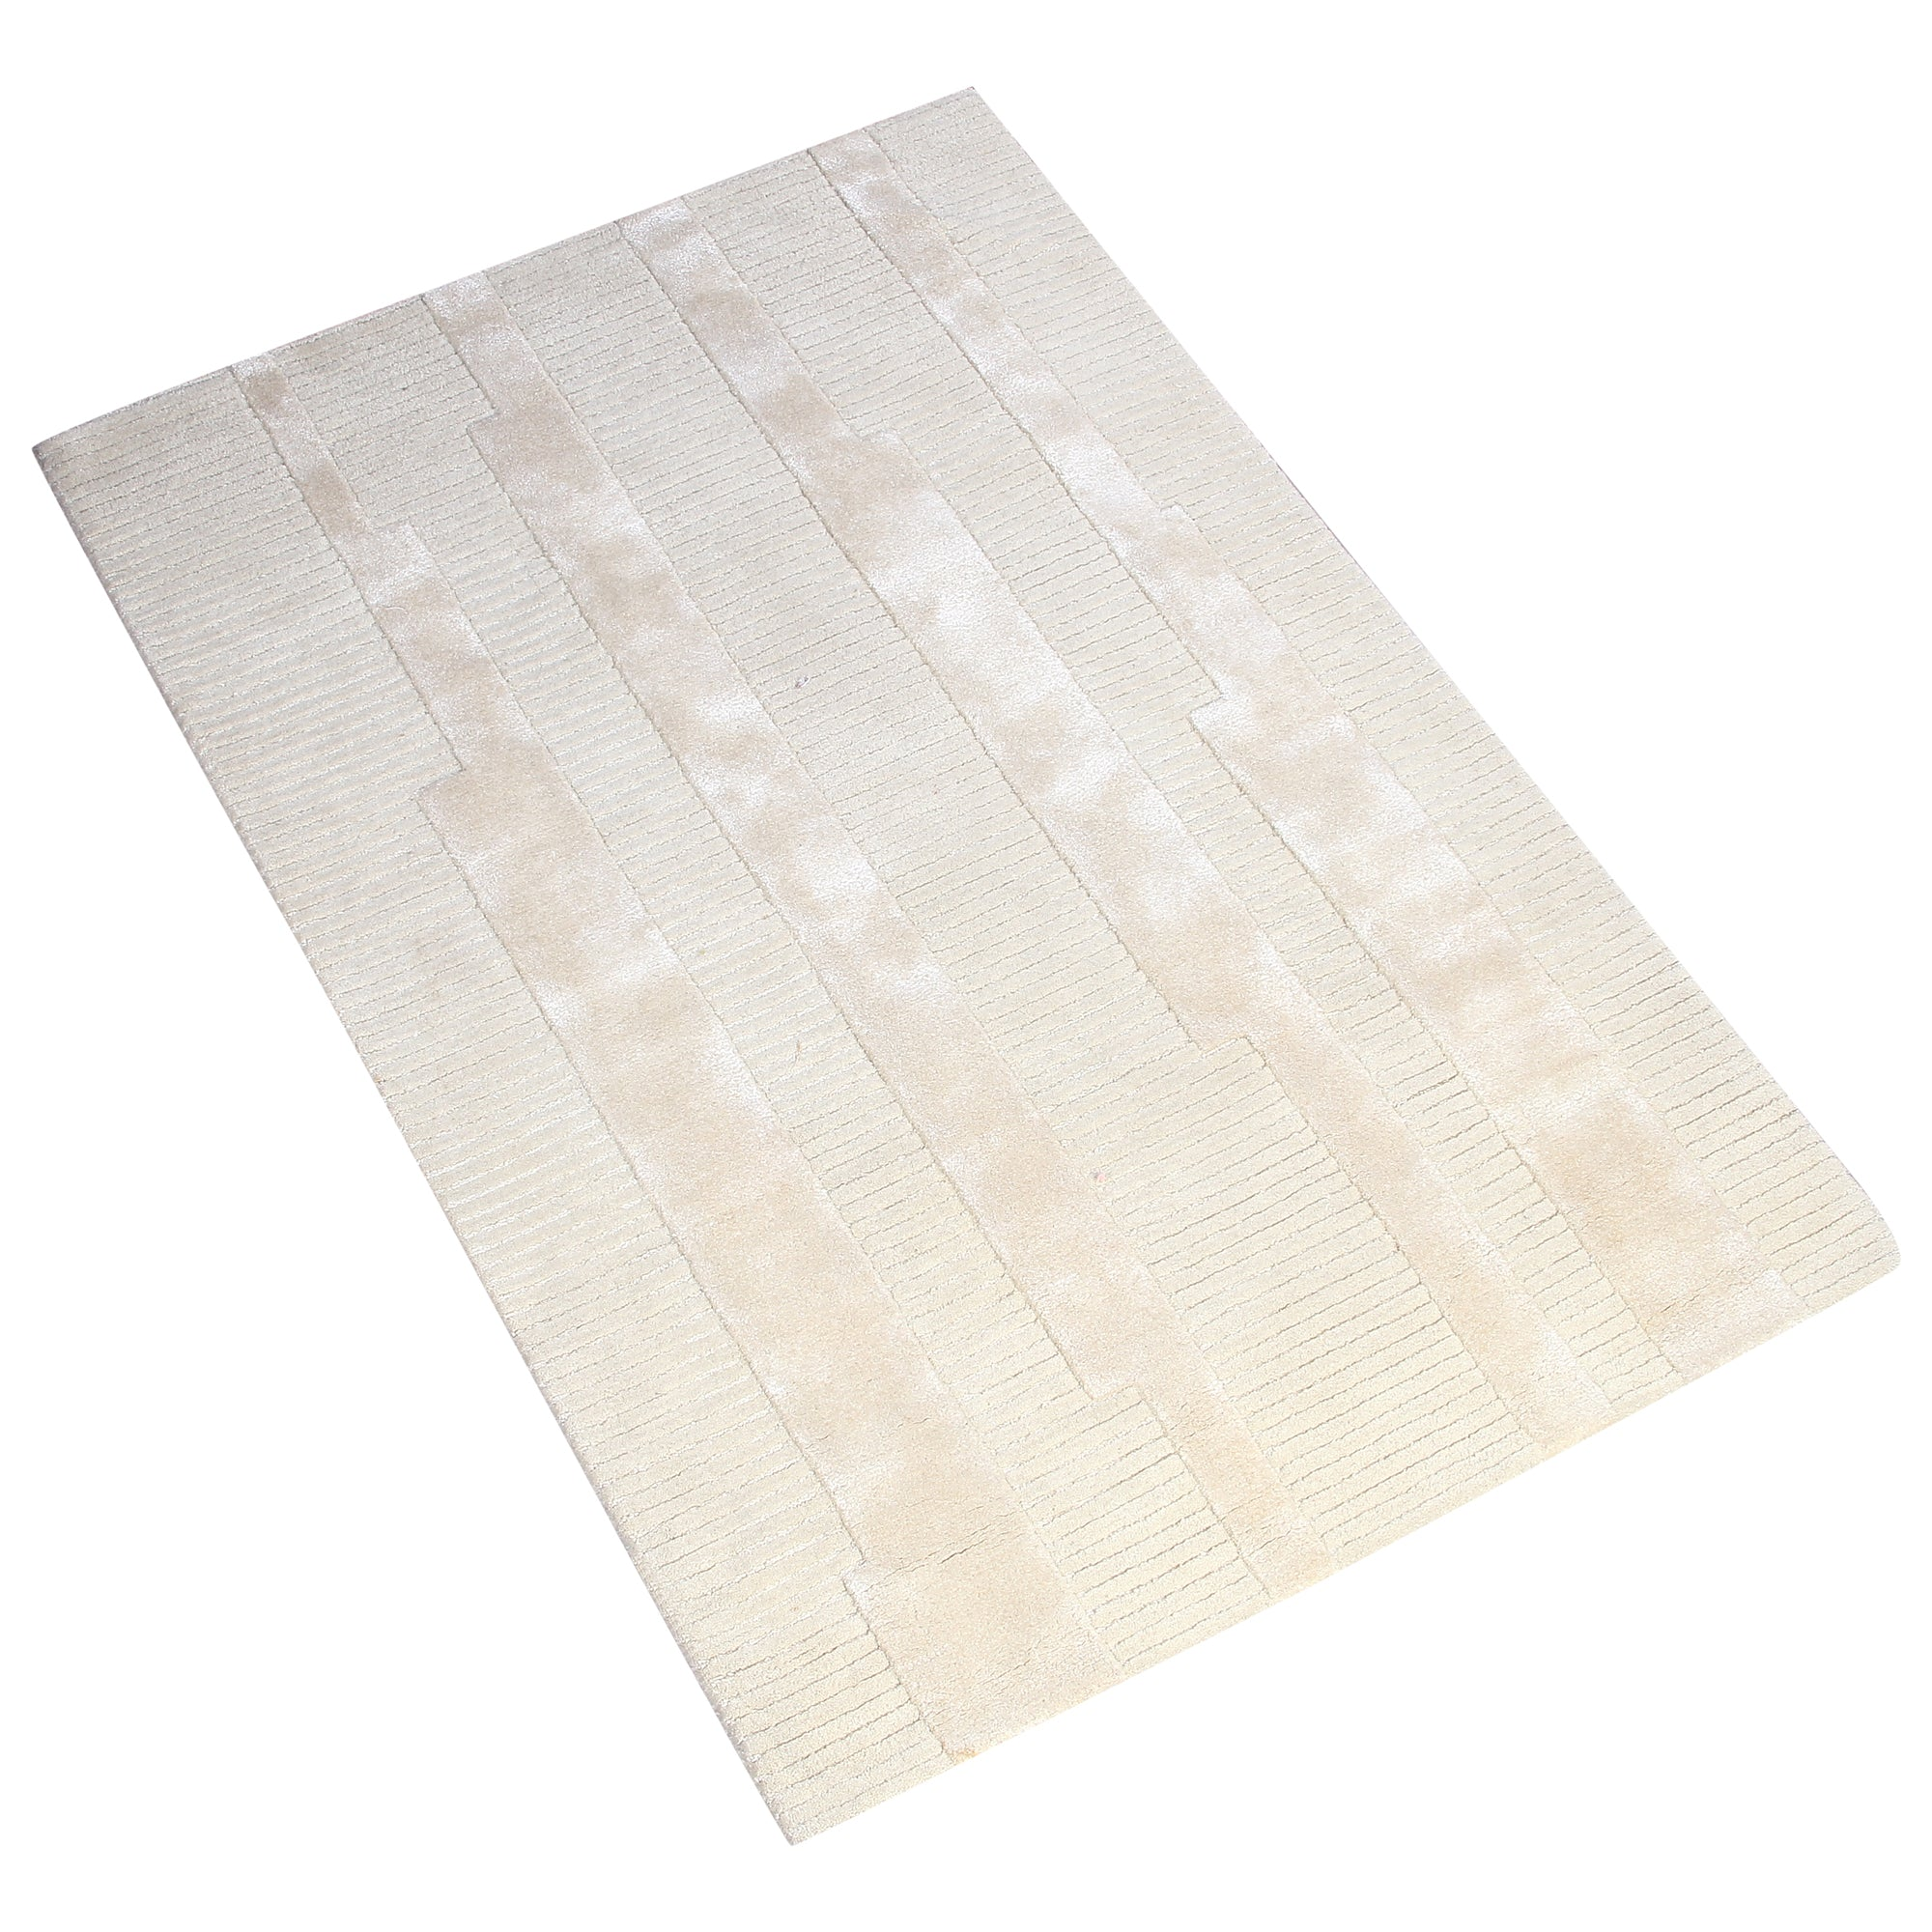 BEIGE EMBOSSED HORIZONTAL STRIPES HAND TUFTED RUG